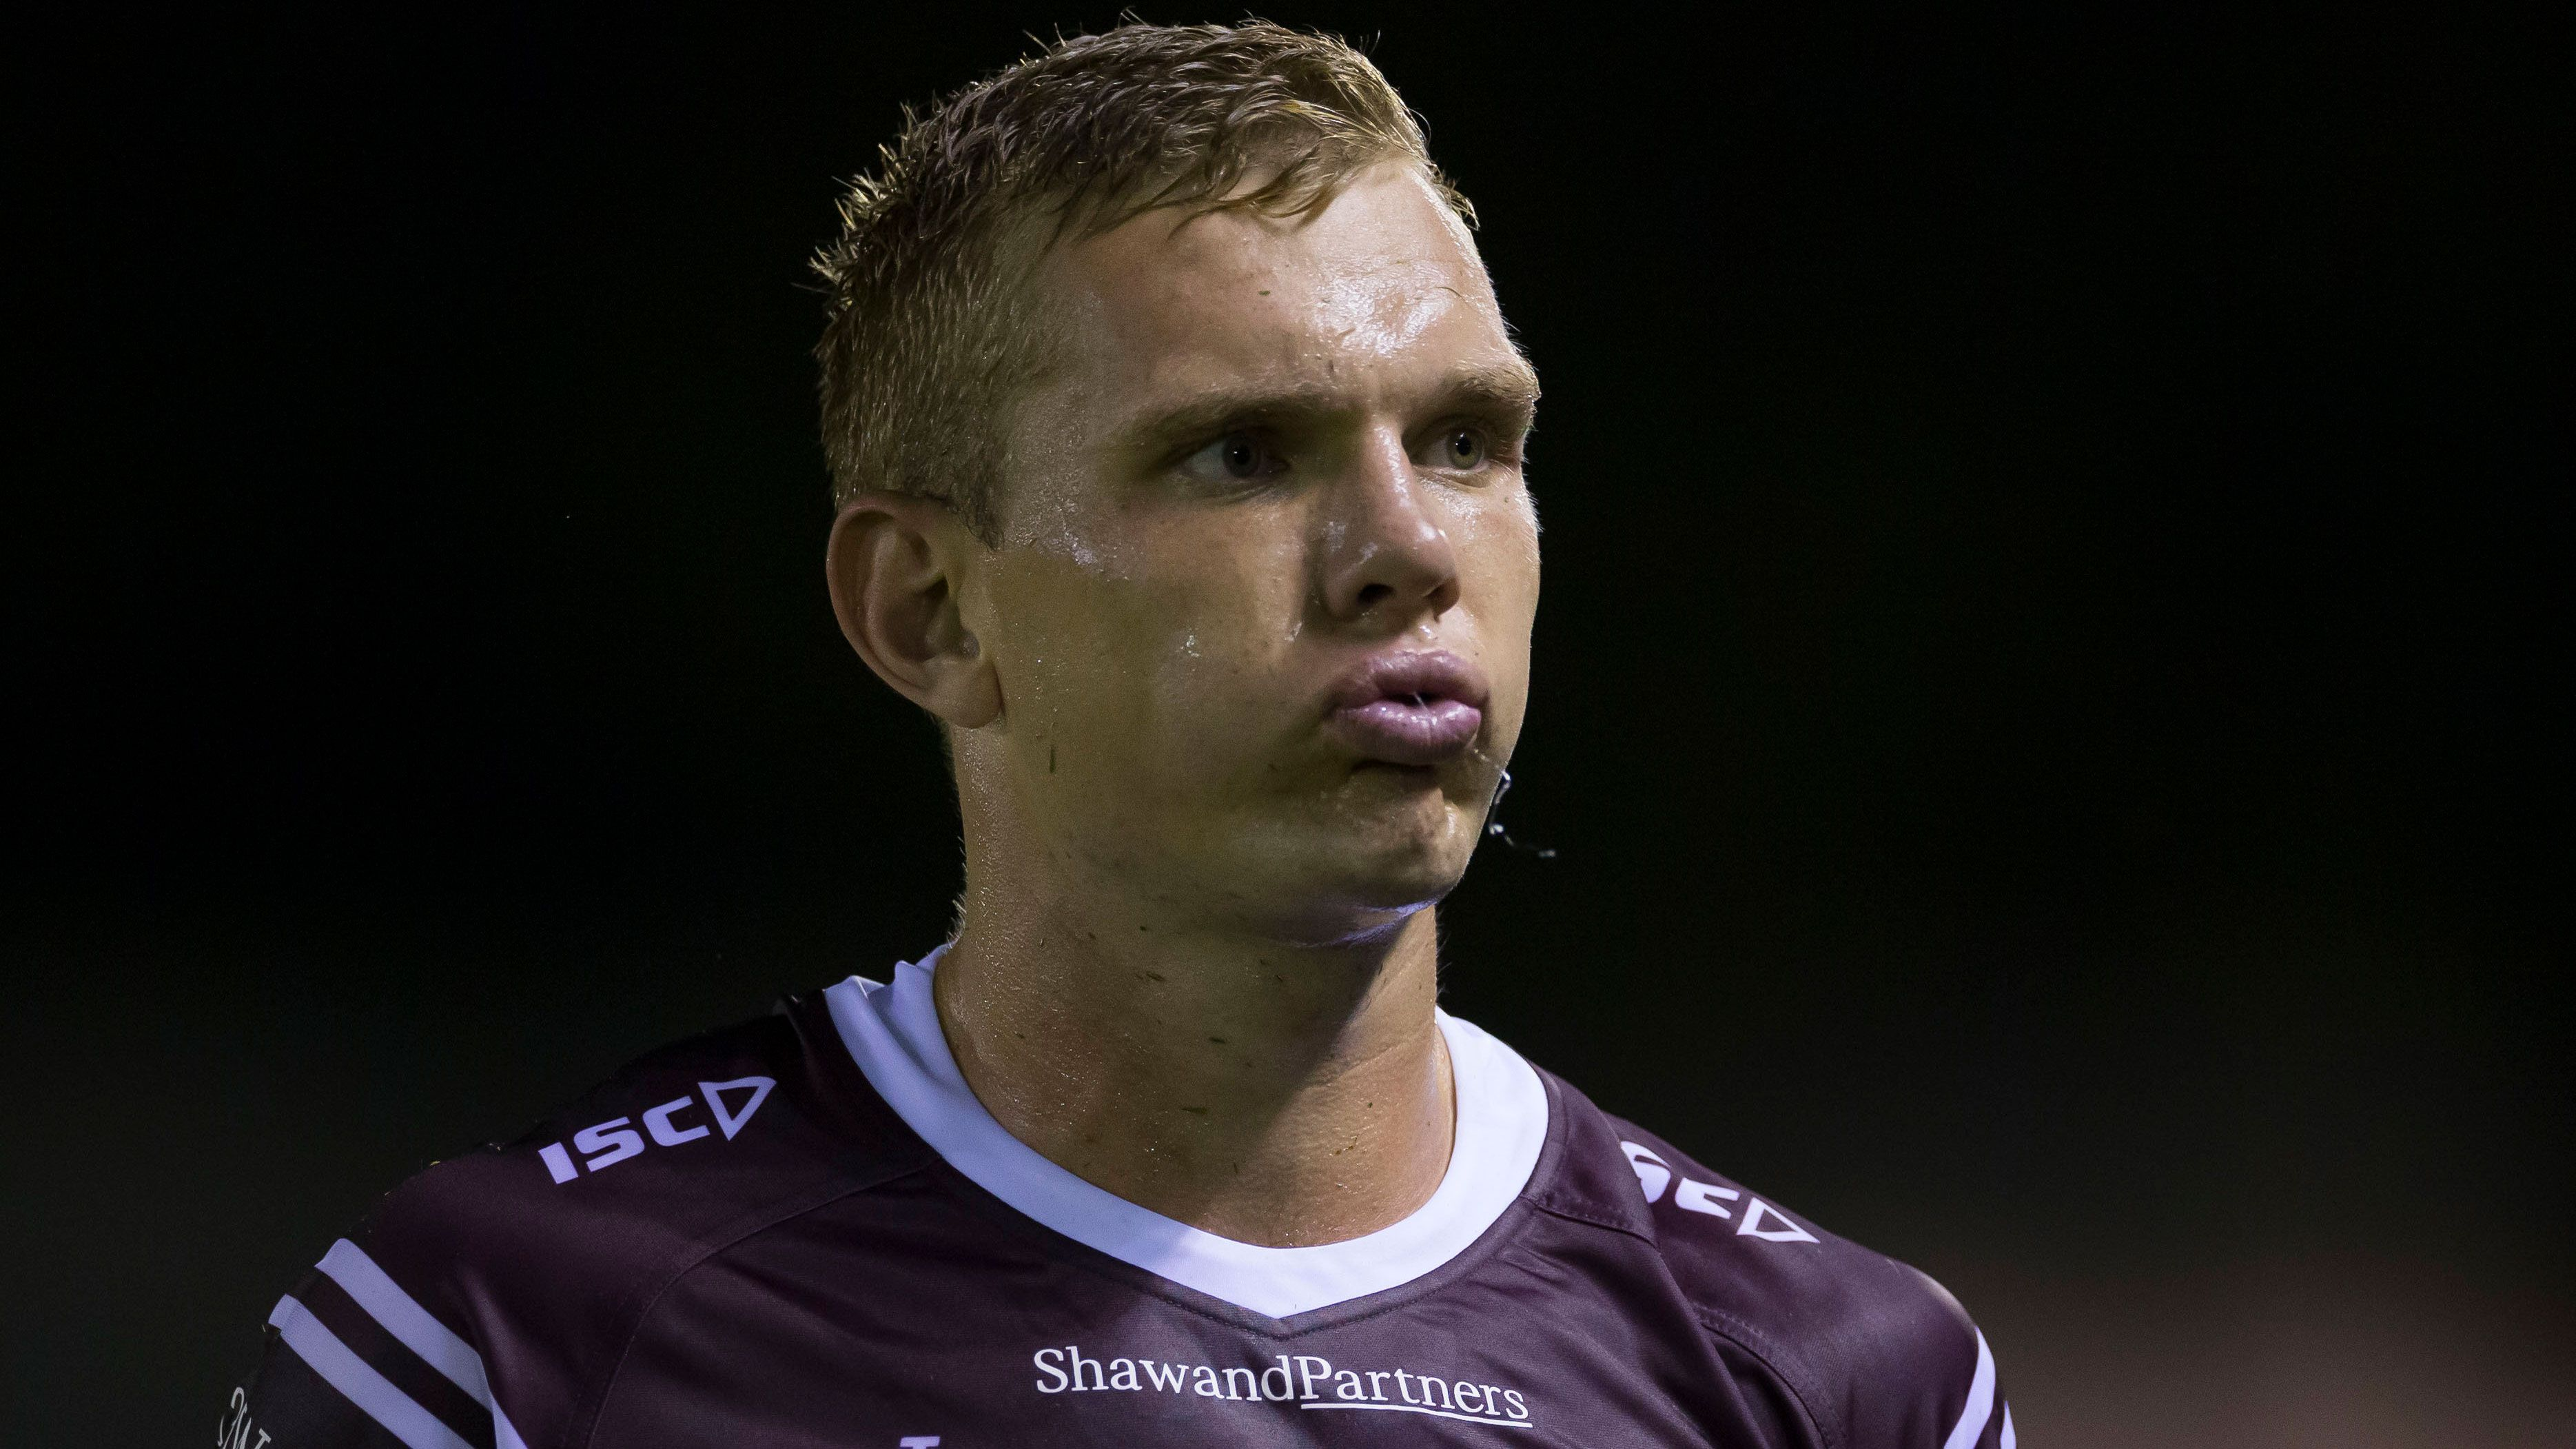 NSW coach Brad Fittler names shortlist for Tommy Turbo Origin replacement